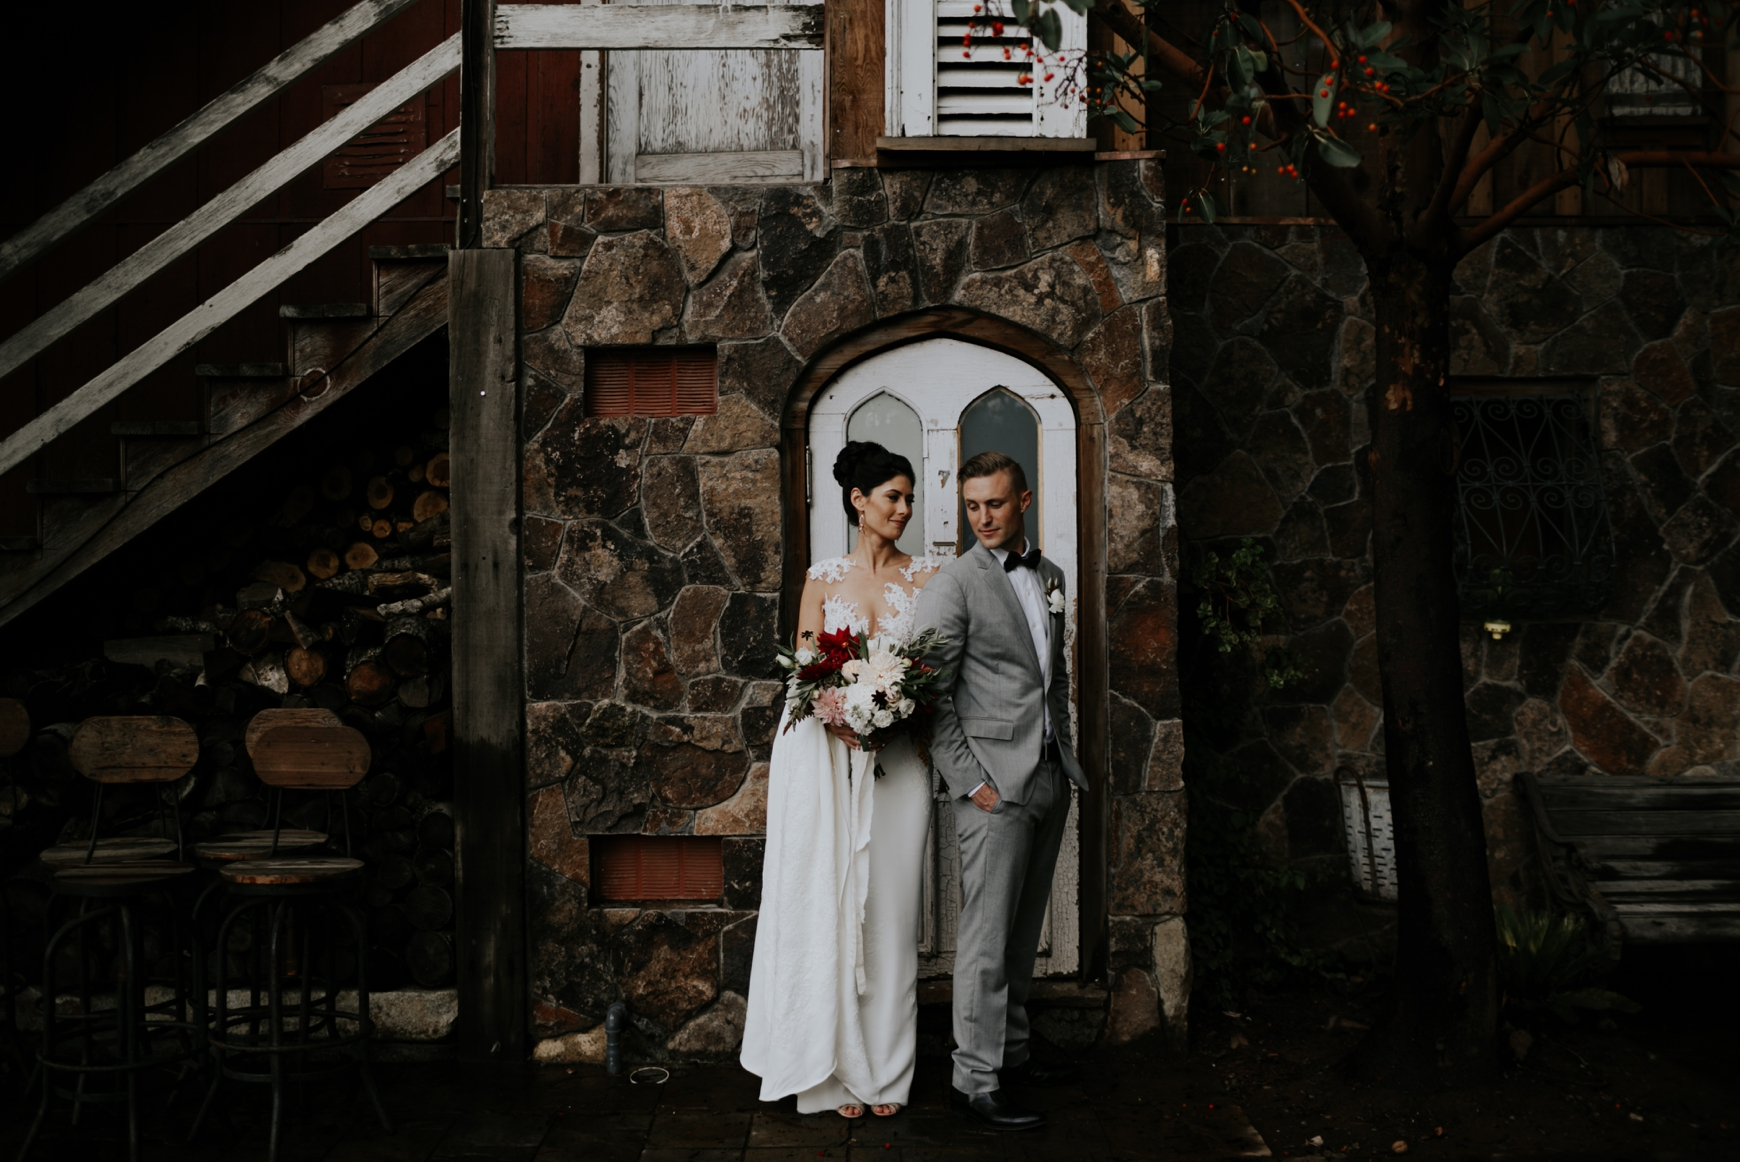 SSS Ranch Wedding Chiara & Jacques Emily Magers Photography-439.jpg